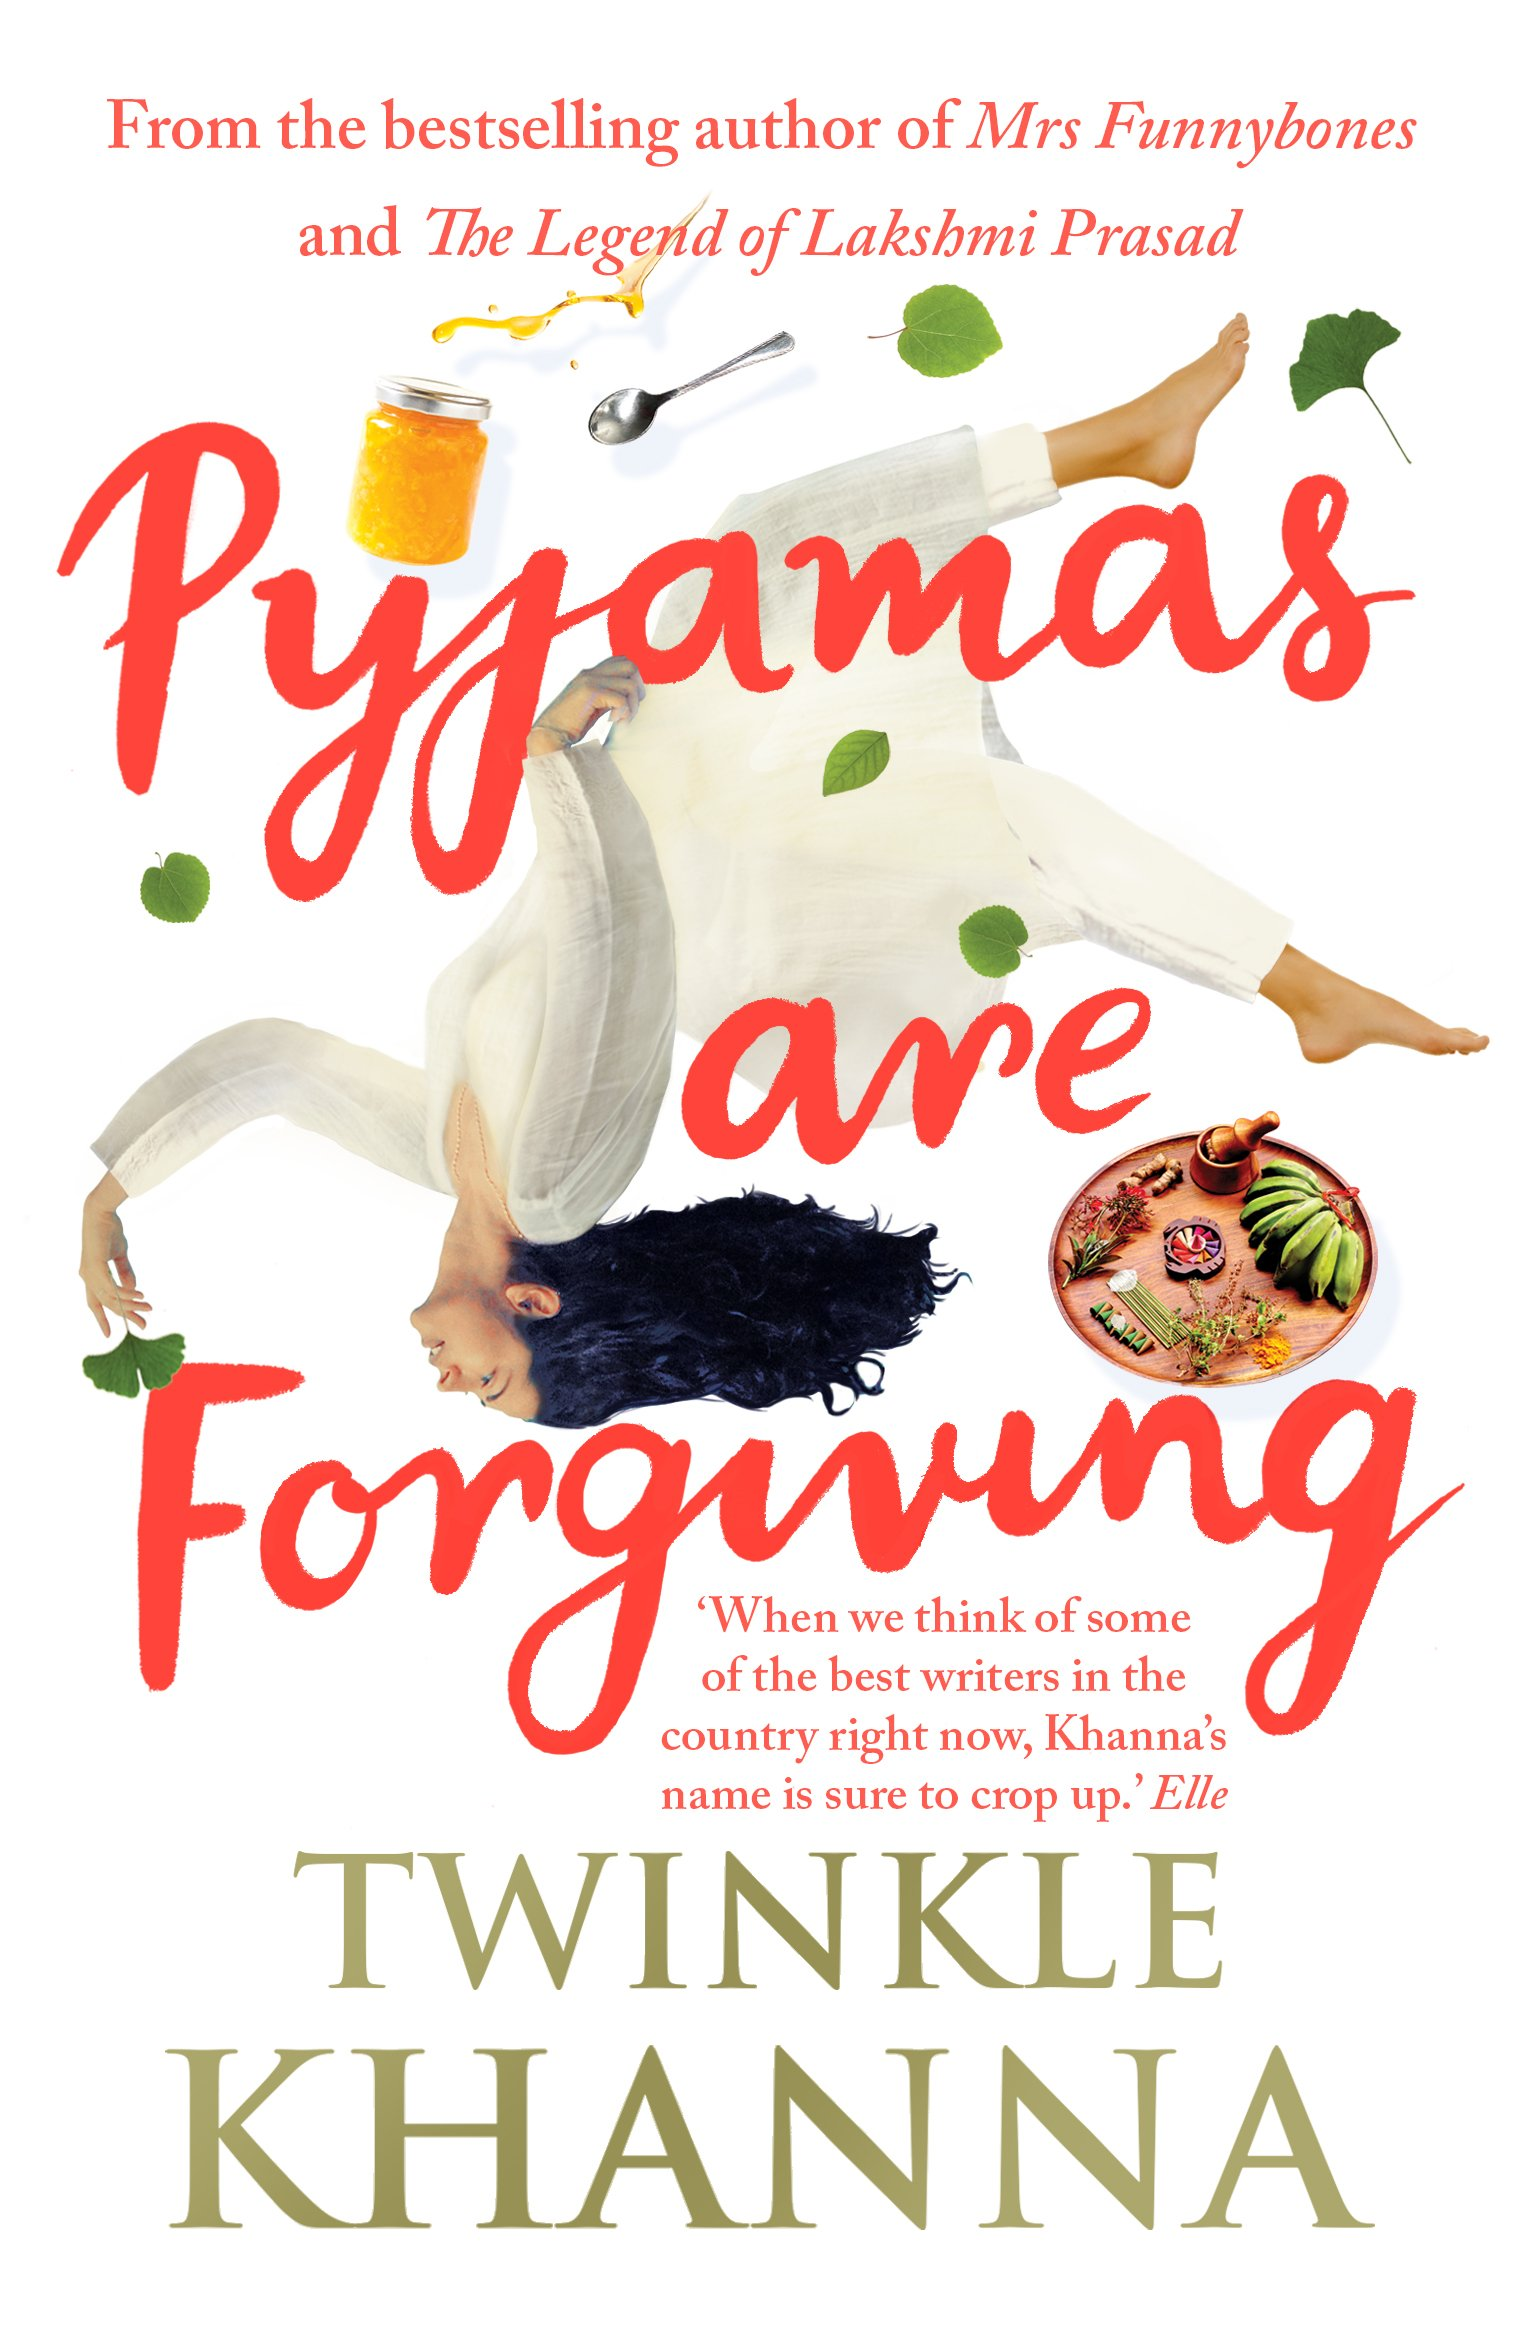 Buy Pyjamas are Forgiving Book Online at Low Prices in India | Pyjamas are  Forgiving Reviews & Ratings - Amazon.in